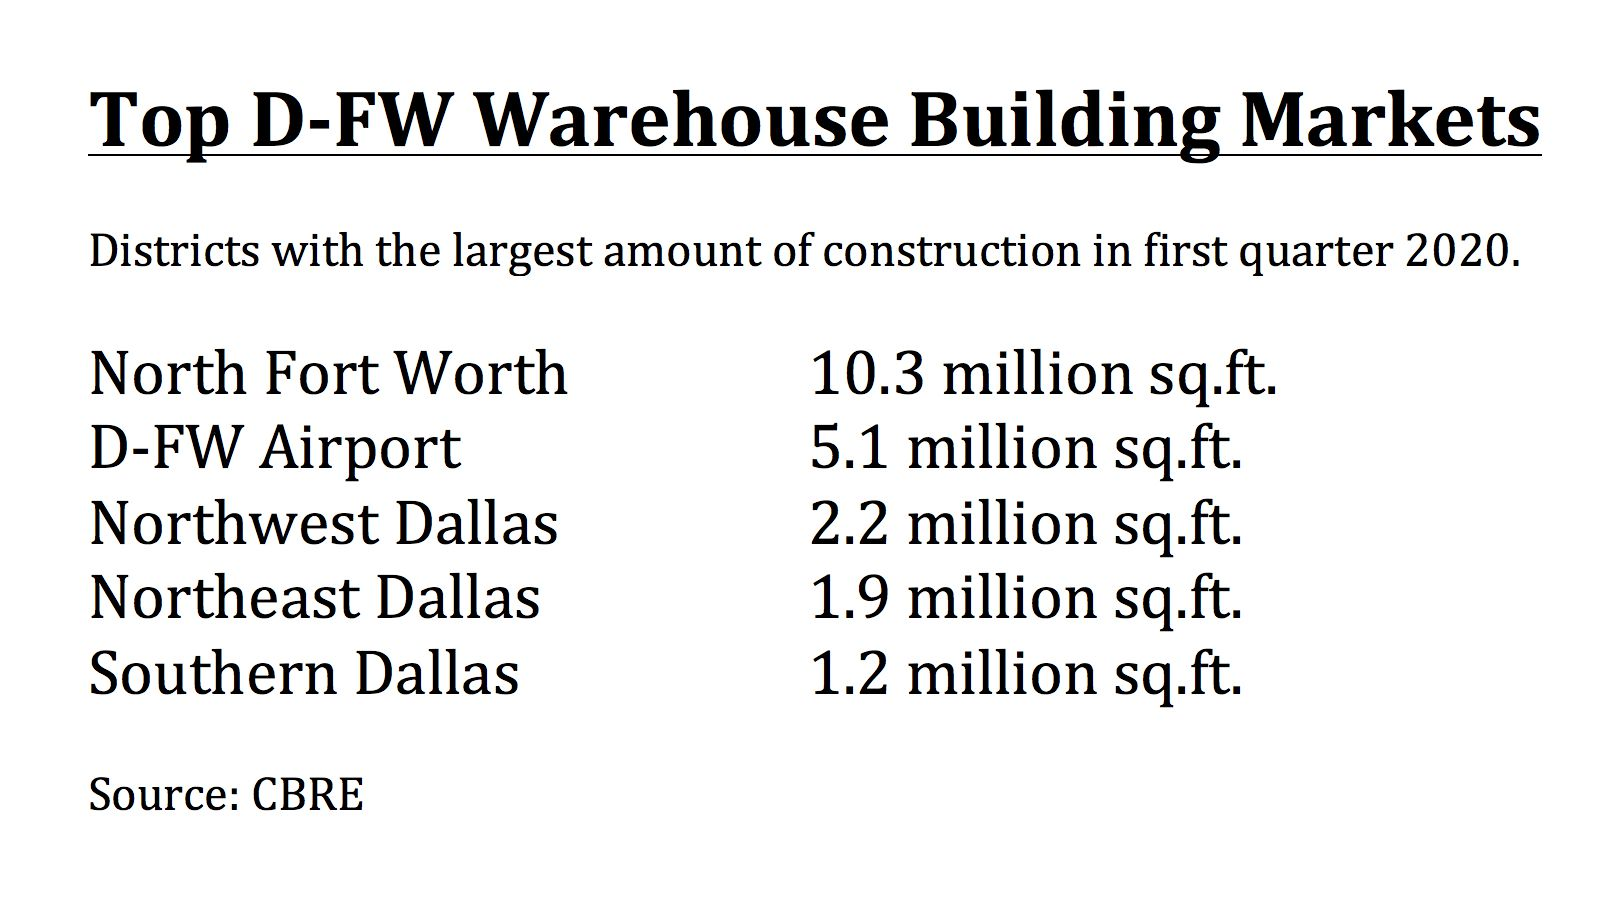 More than 23 million square feet of industrial space is being built in North Texas.